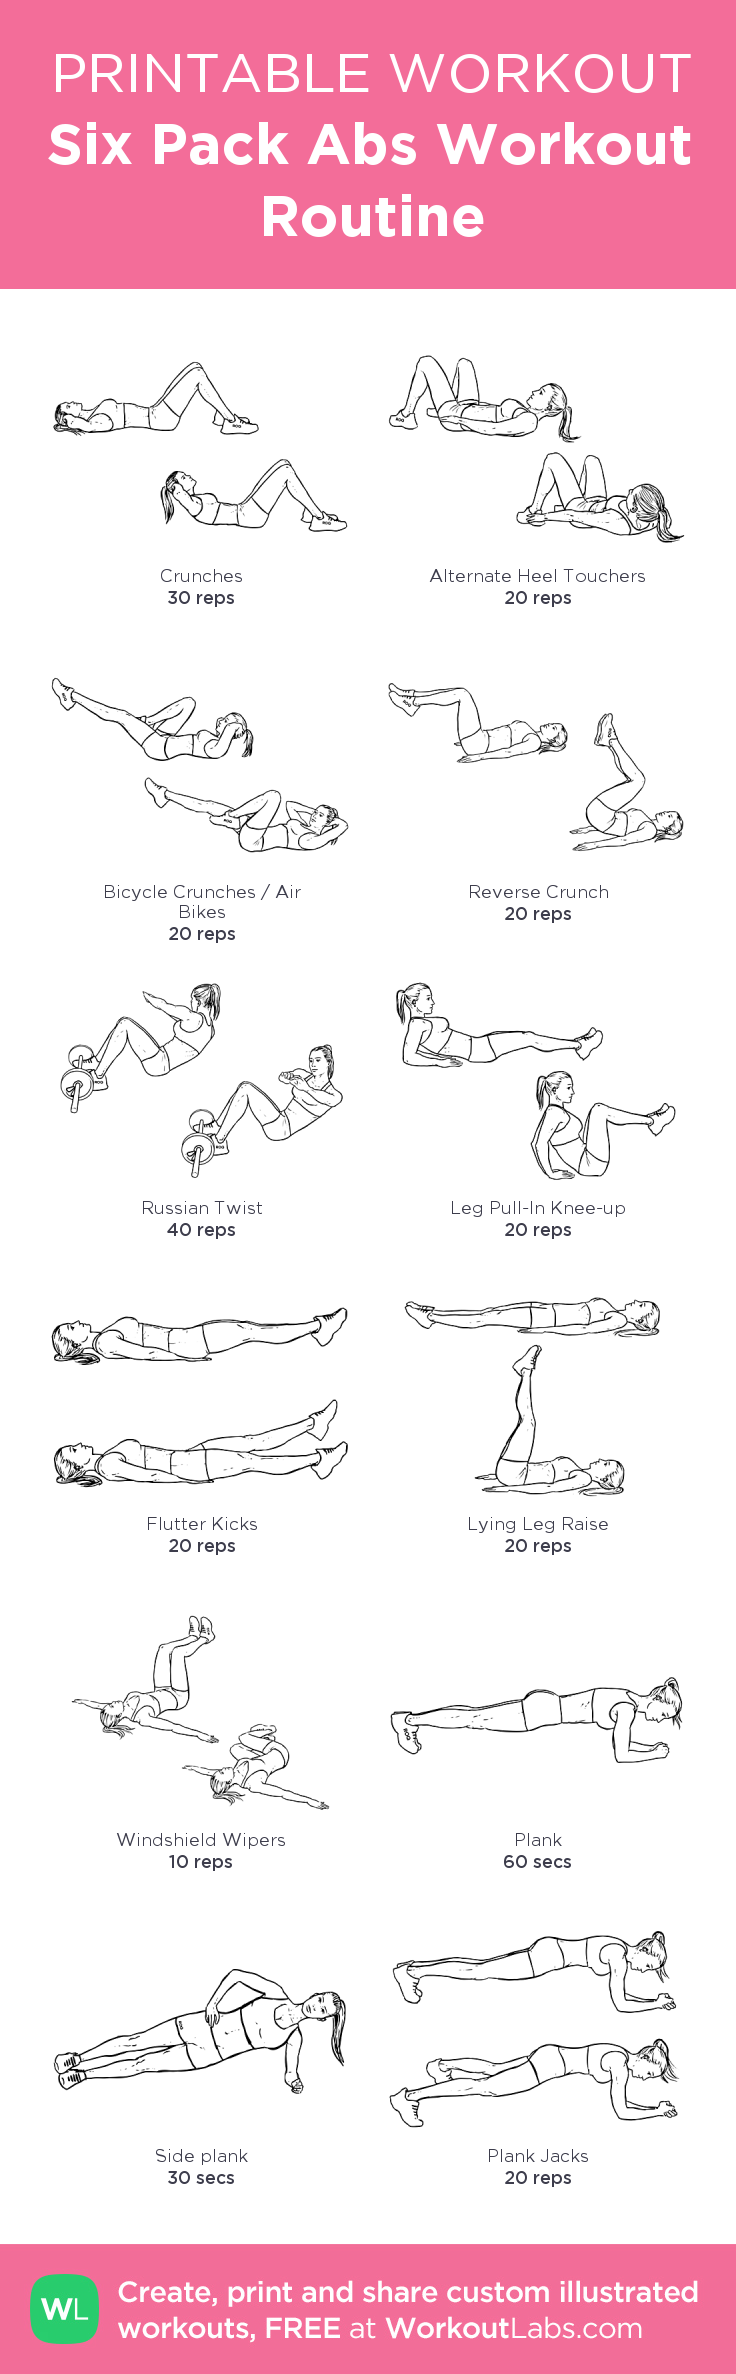 Six Pack Abs Workout Routine: my custom printable workout by @WorkoutLabs #workoutlabs #customworkout